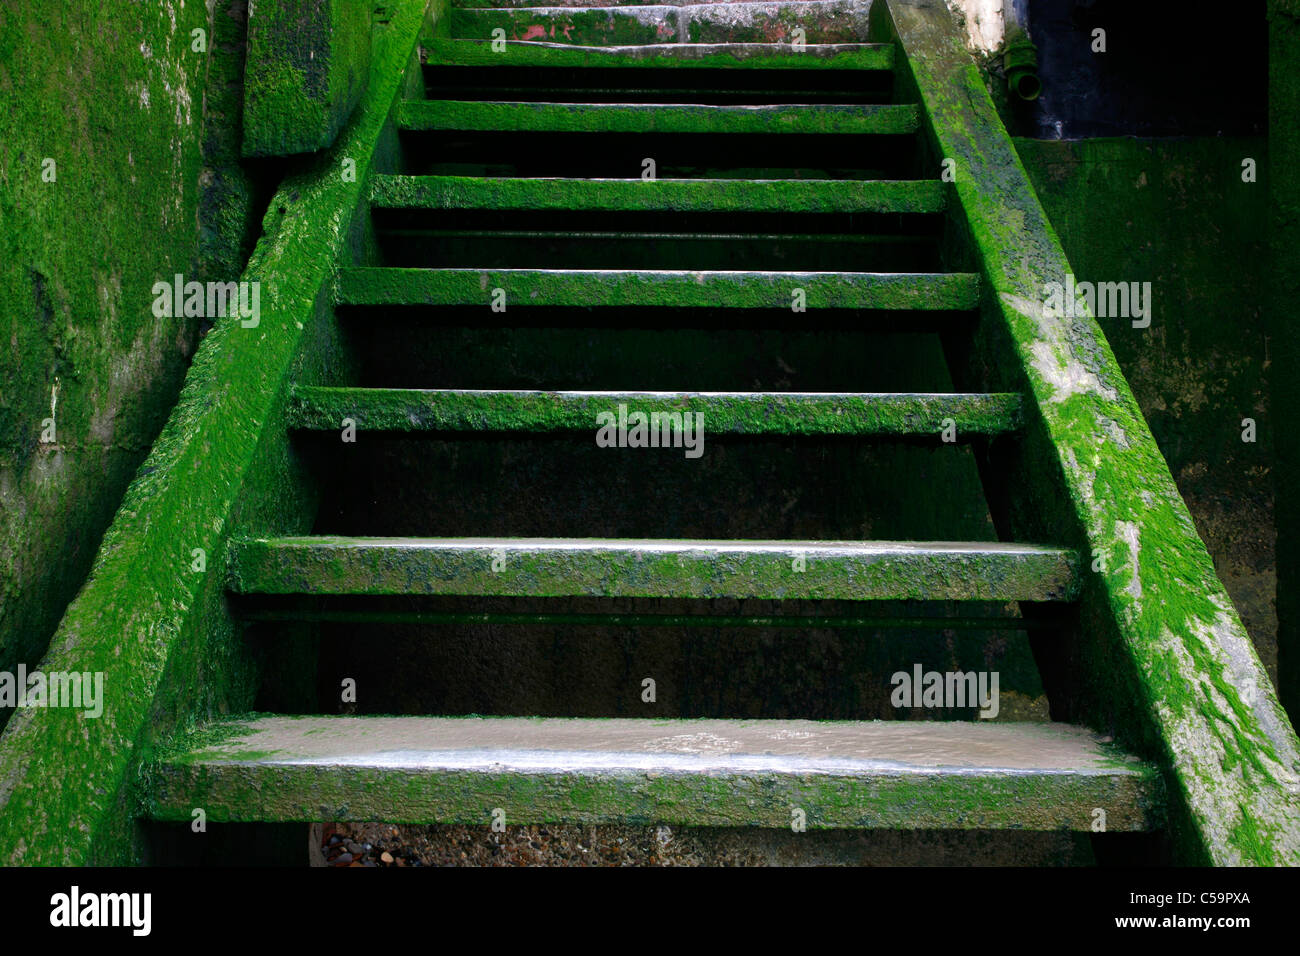 Steps leading down to the River Thames foreshore at New Crane Stairs, Wapping, London, UK - Stock Image